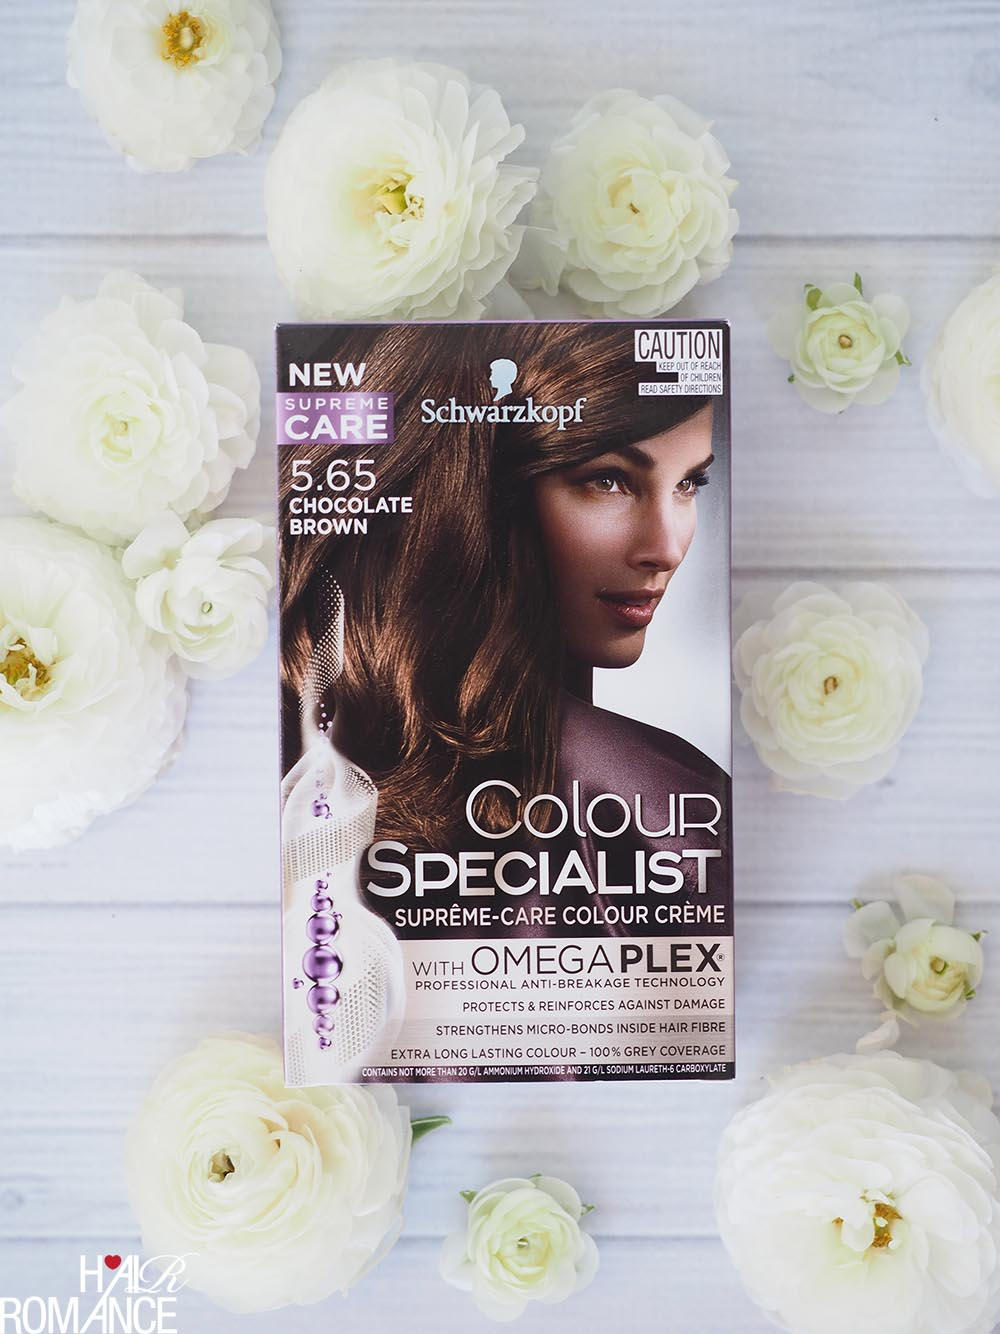 Hair Transformations with Schwarzkopf Colour Specialist range with Omegaplex